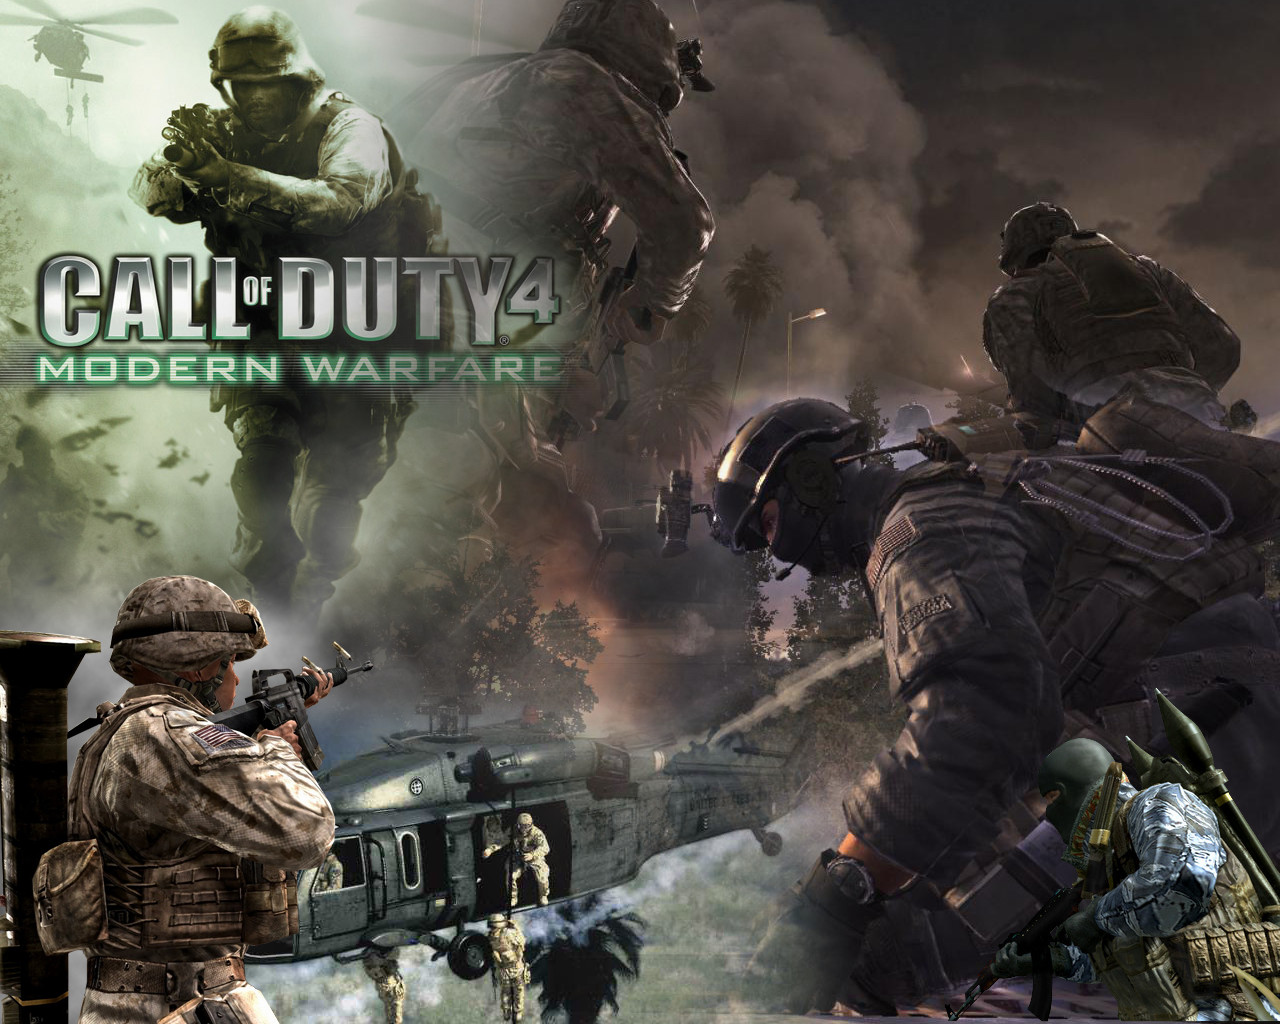 http://4.bp.blogspot.com/-hWGB213arEQ/UJG5x81fKxI/AAAAAAAAAPE/iZ6DkwHZ_7M/s1600/call-of-duty-4-wallpaper-modern-warfare-screensa-collage.jpg